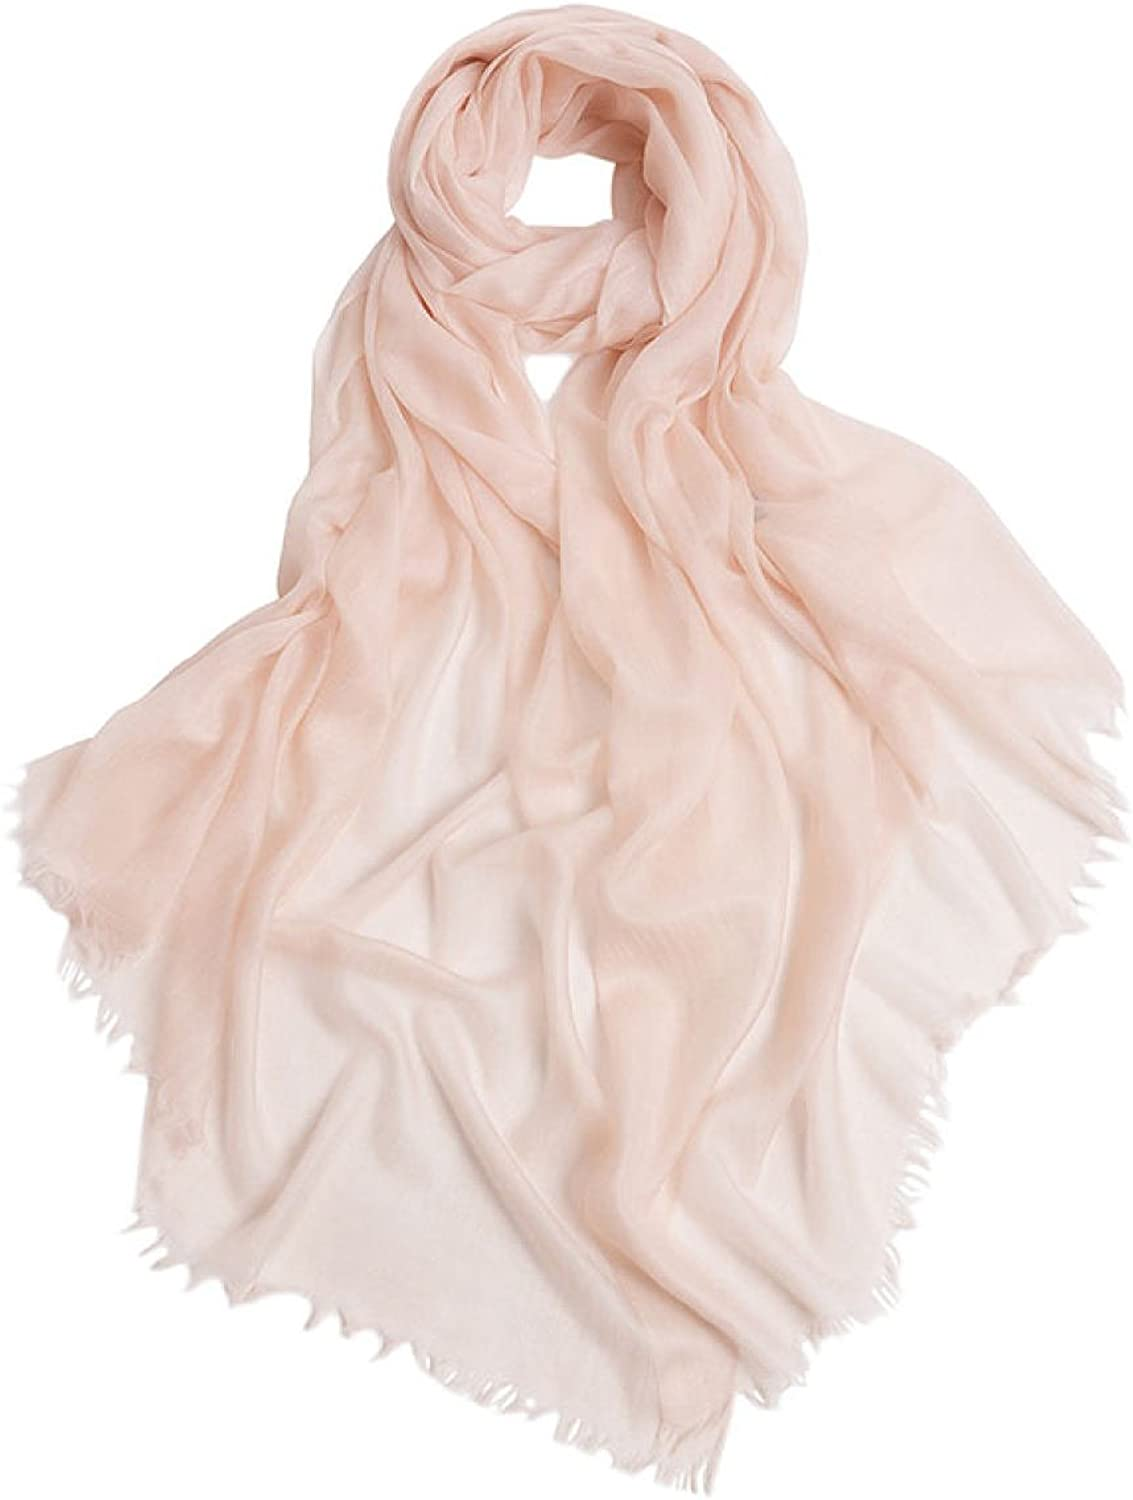 New Scarf Air Conditioning Room Shawl Dual Female Winter,11OneSize